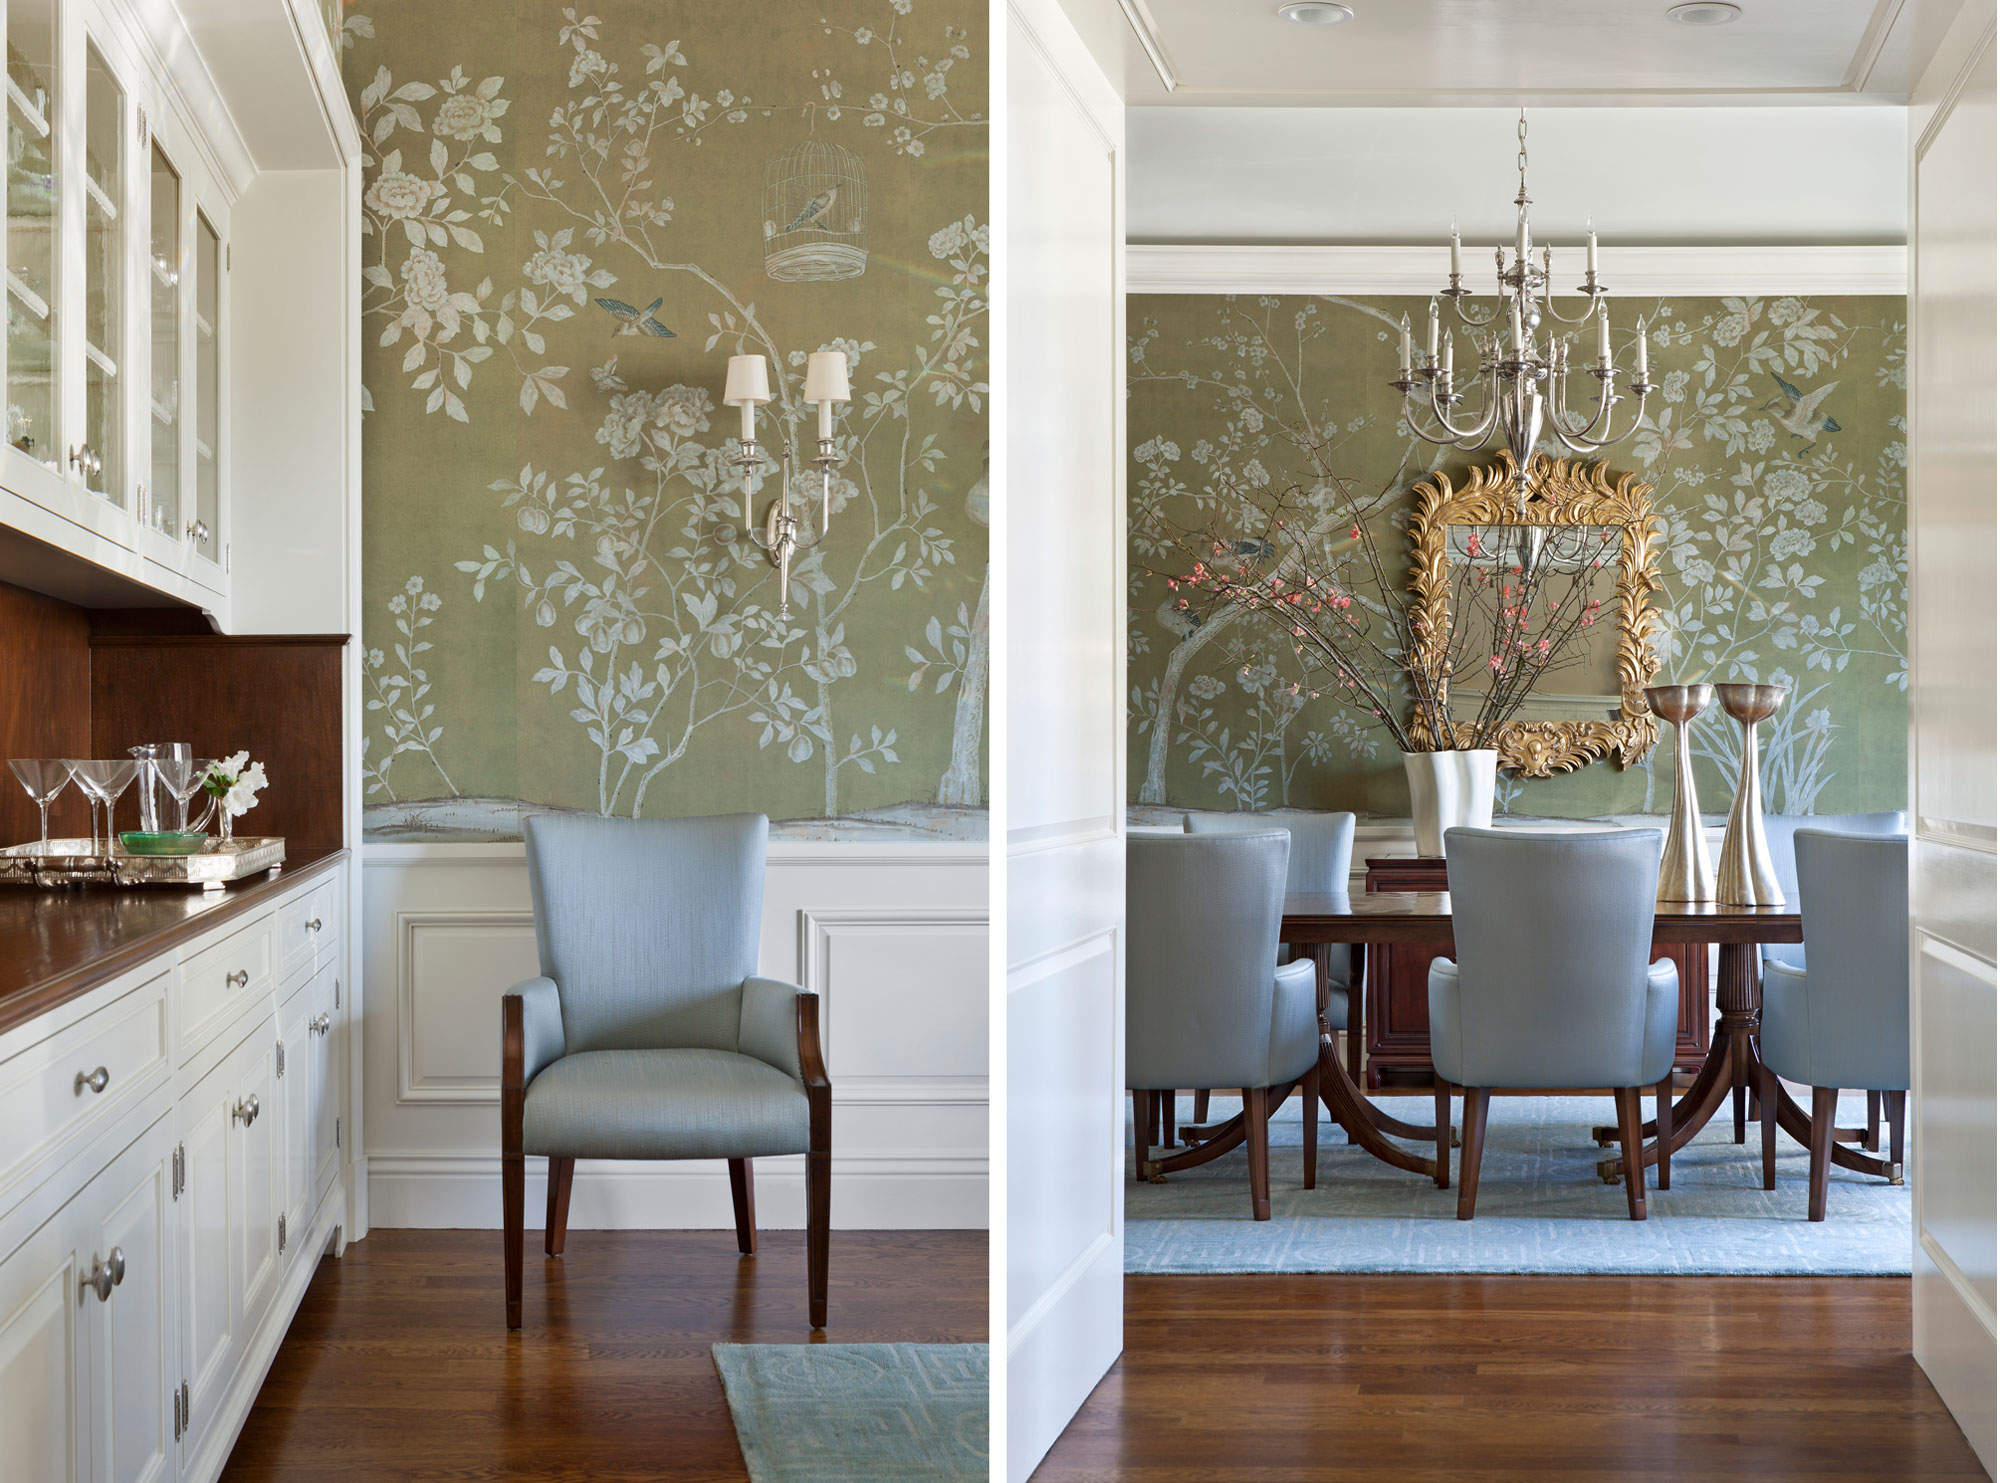 dining-room-wainscoting-butlers-pantry-ward-jewell.jpg